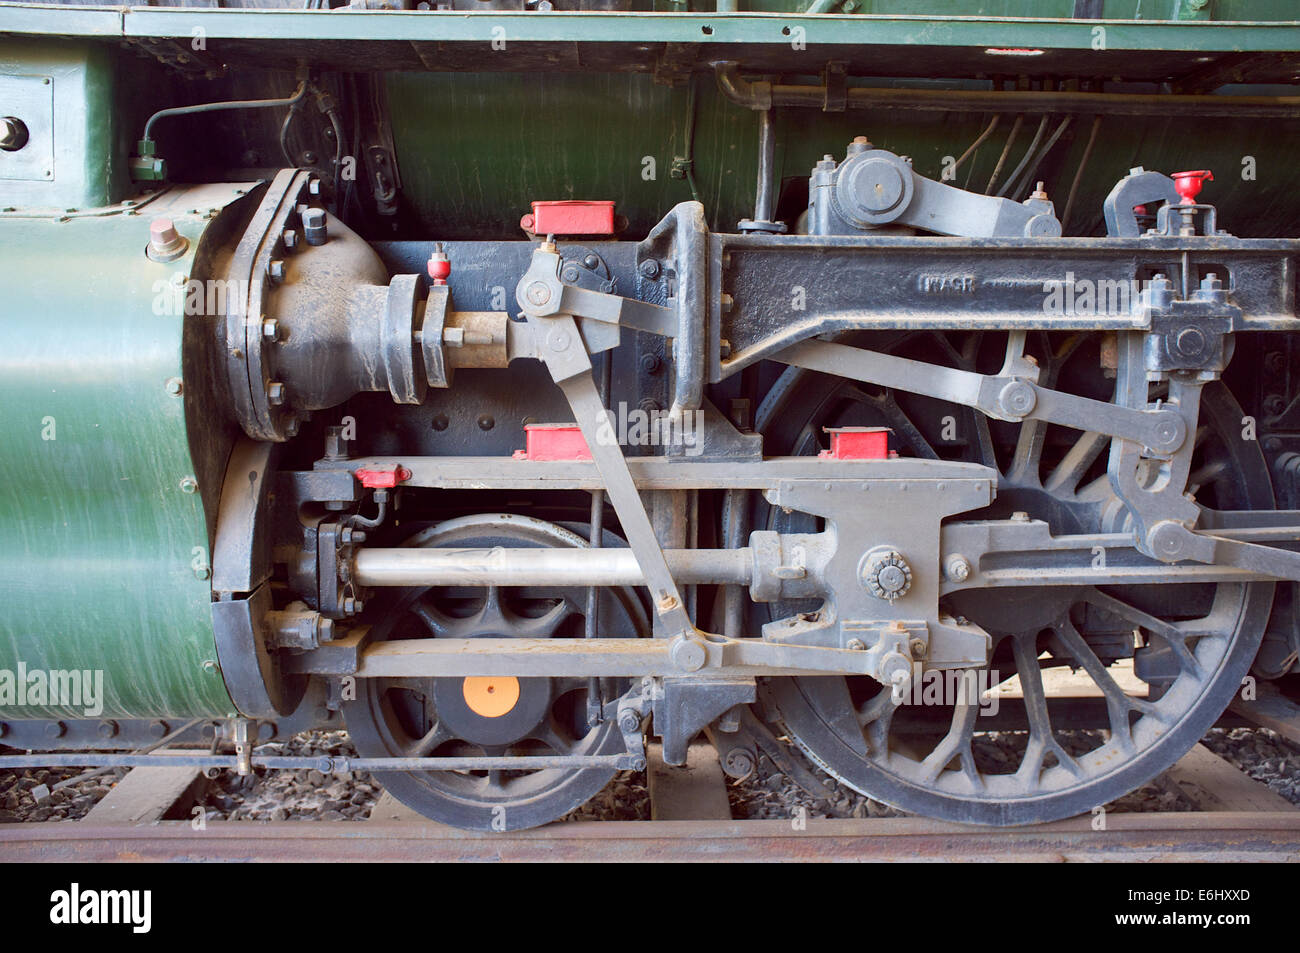 The front wheels of V1220 2-8-2, the largest steam